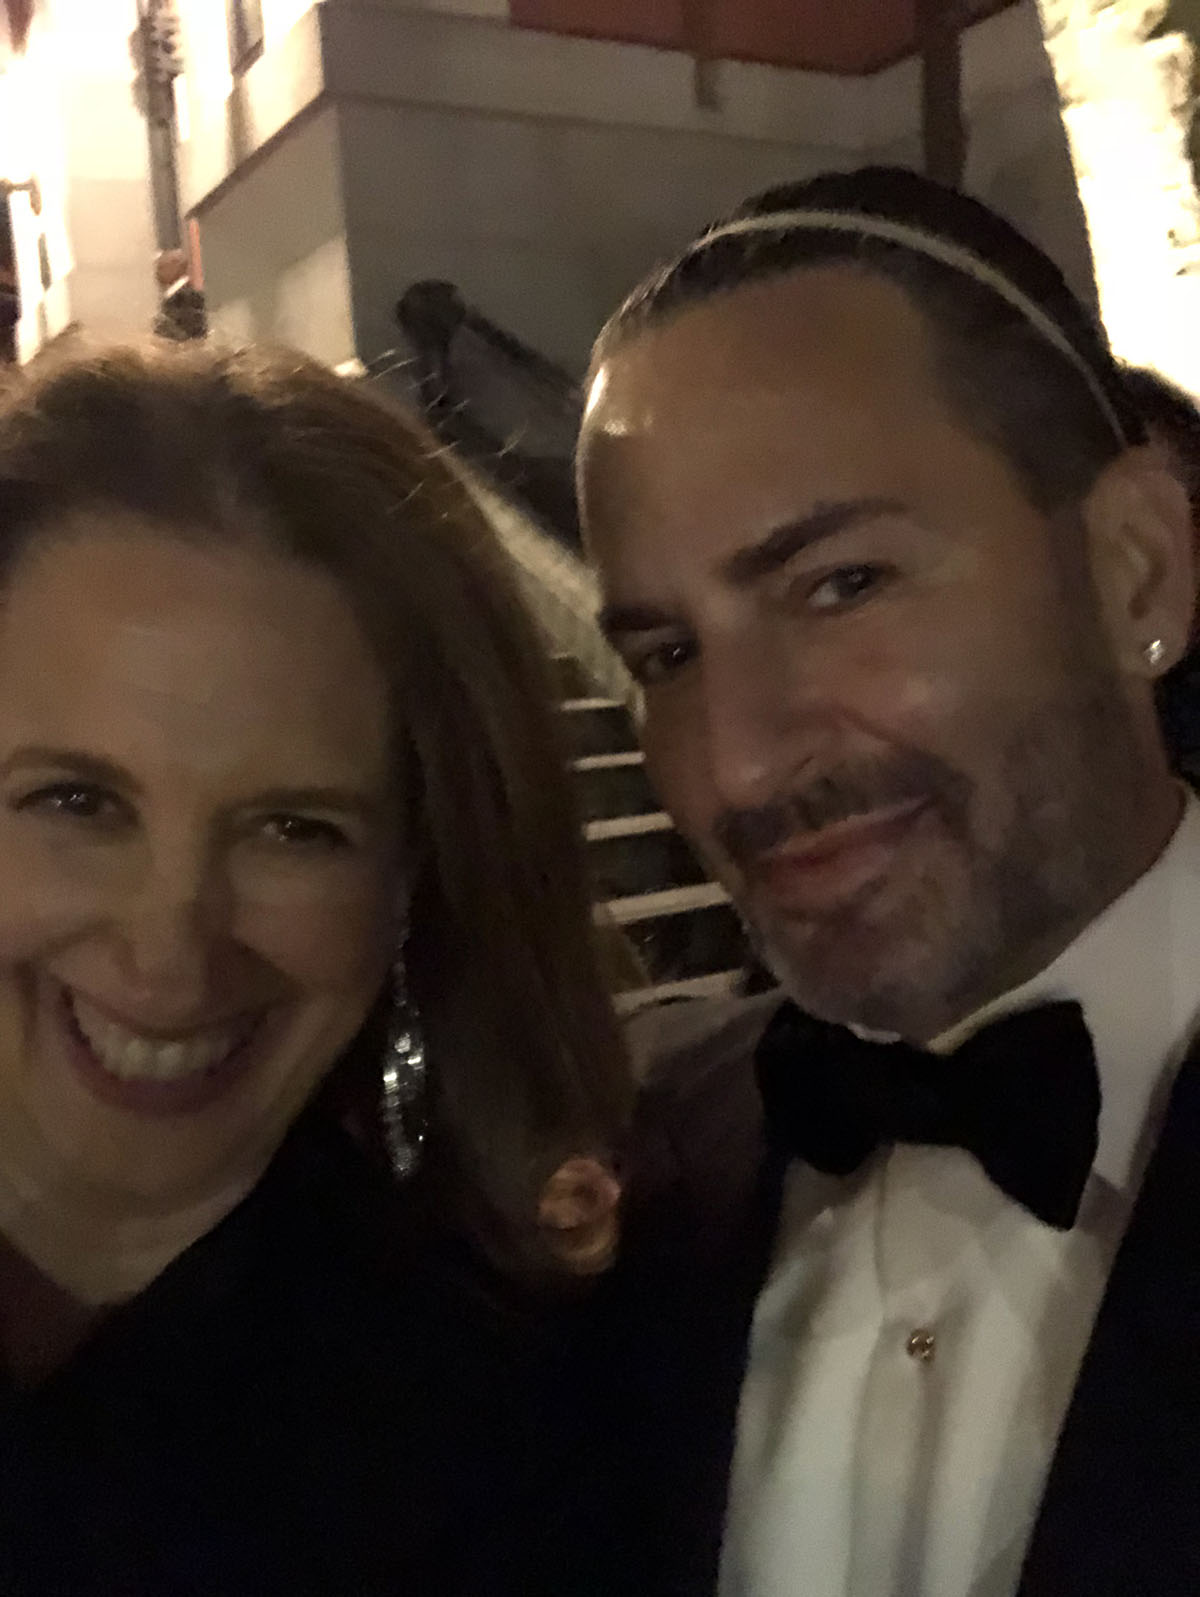 The other evening I attended the Park Avenue Armory's Indigo Gala and ran into the completely fabulous Marc Jacobs!